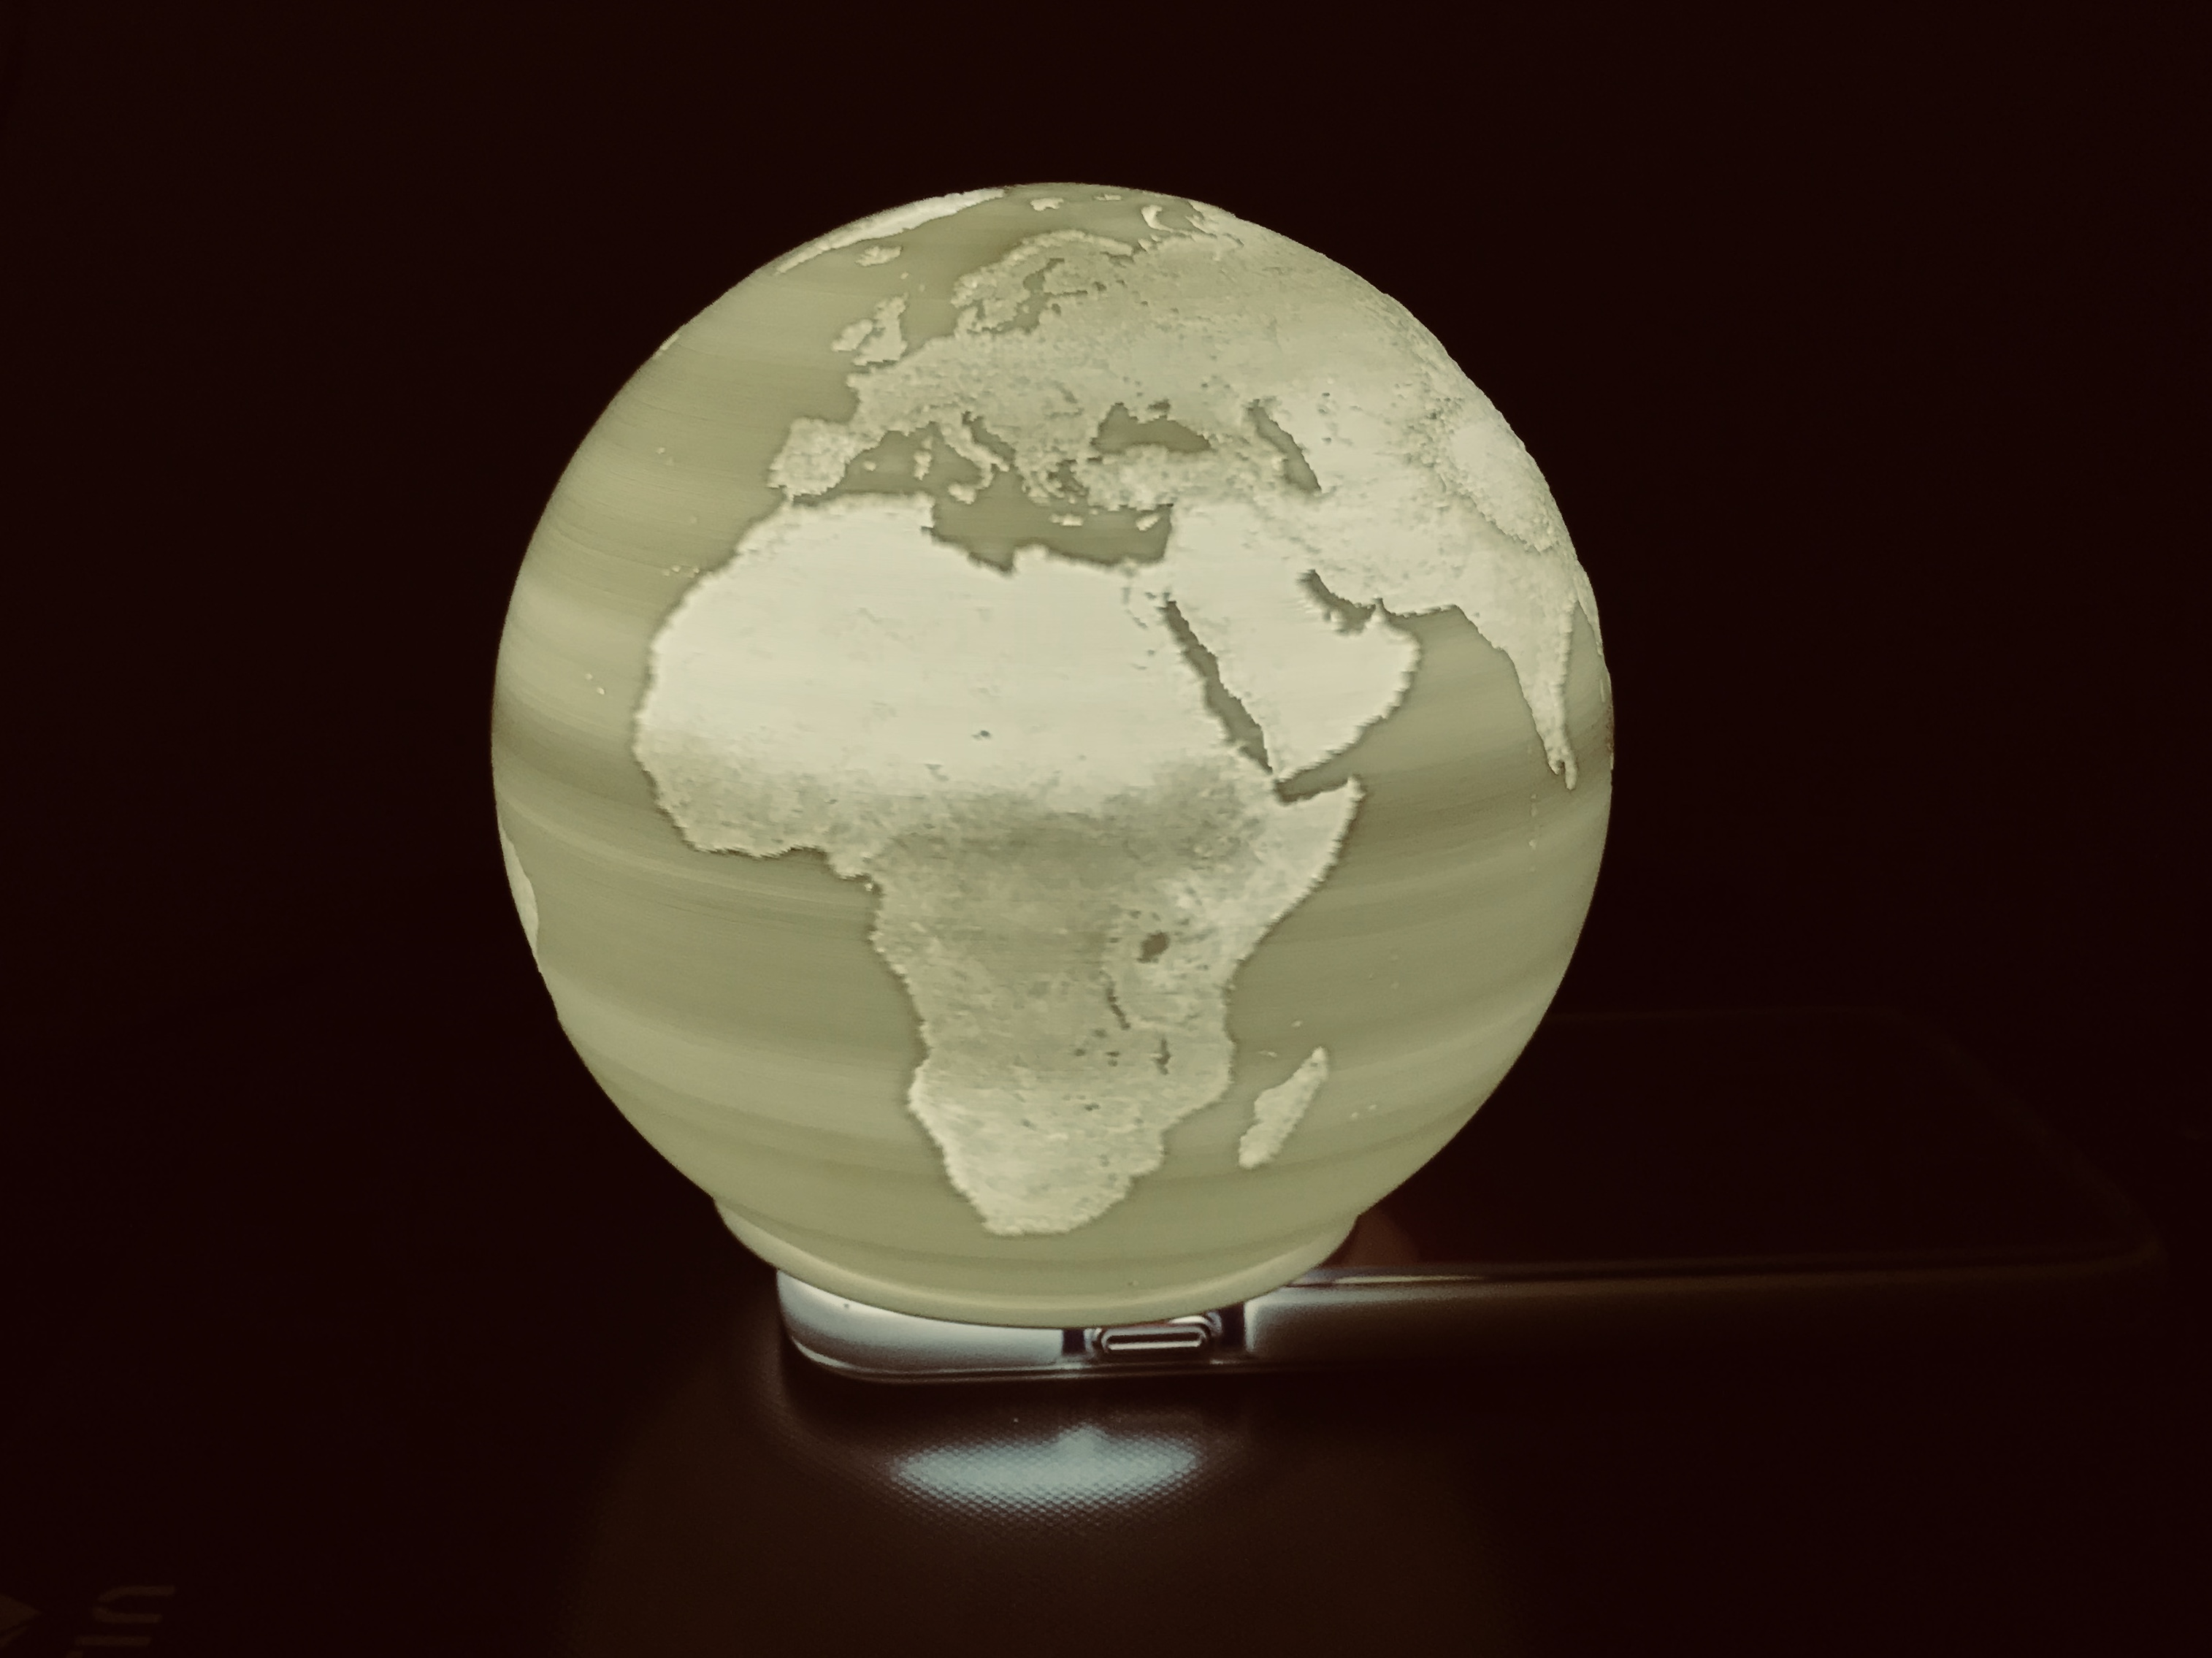 Spherical World Map.Spherical Lithophane World Map 12cm Remix By Domi1988 Thingiverse